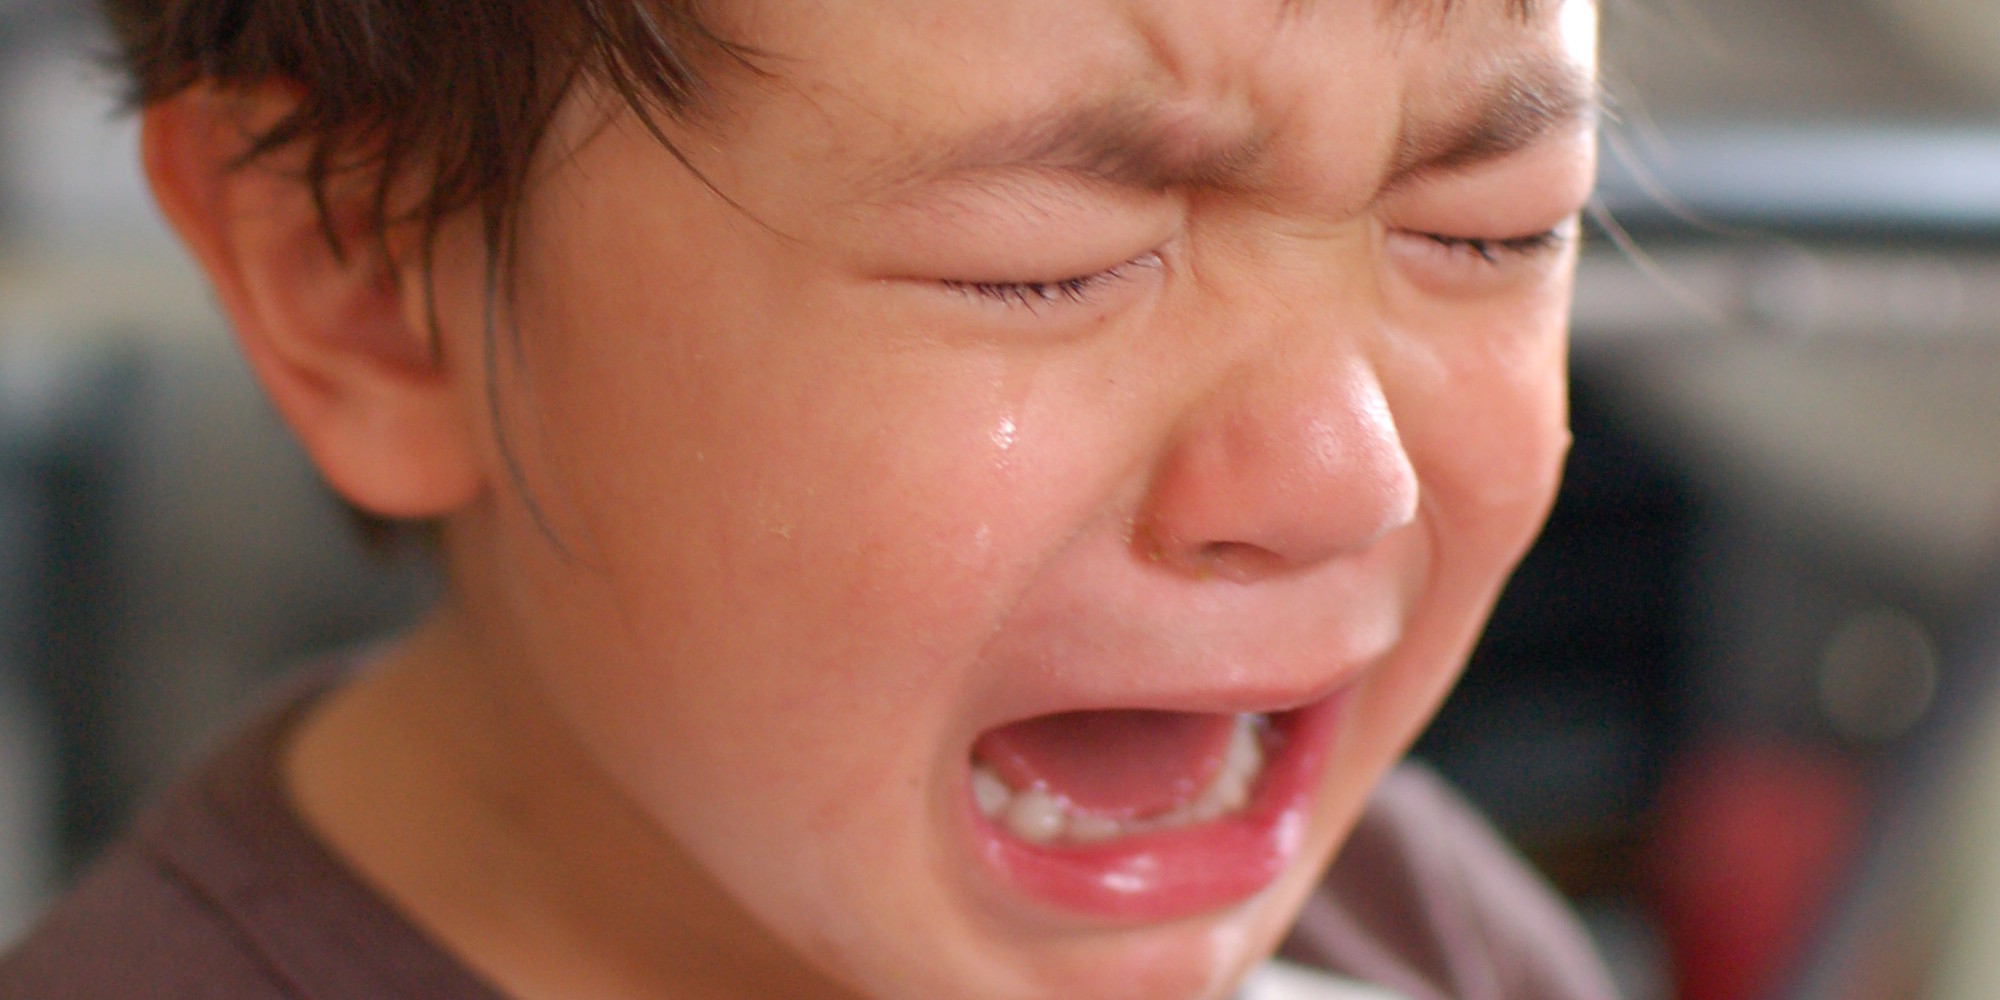 Reasons I'm Crying Over 'Reasons My Son Is Crying' | HuffPost